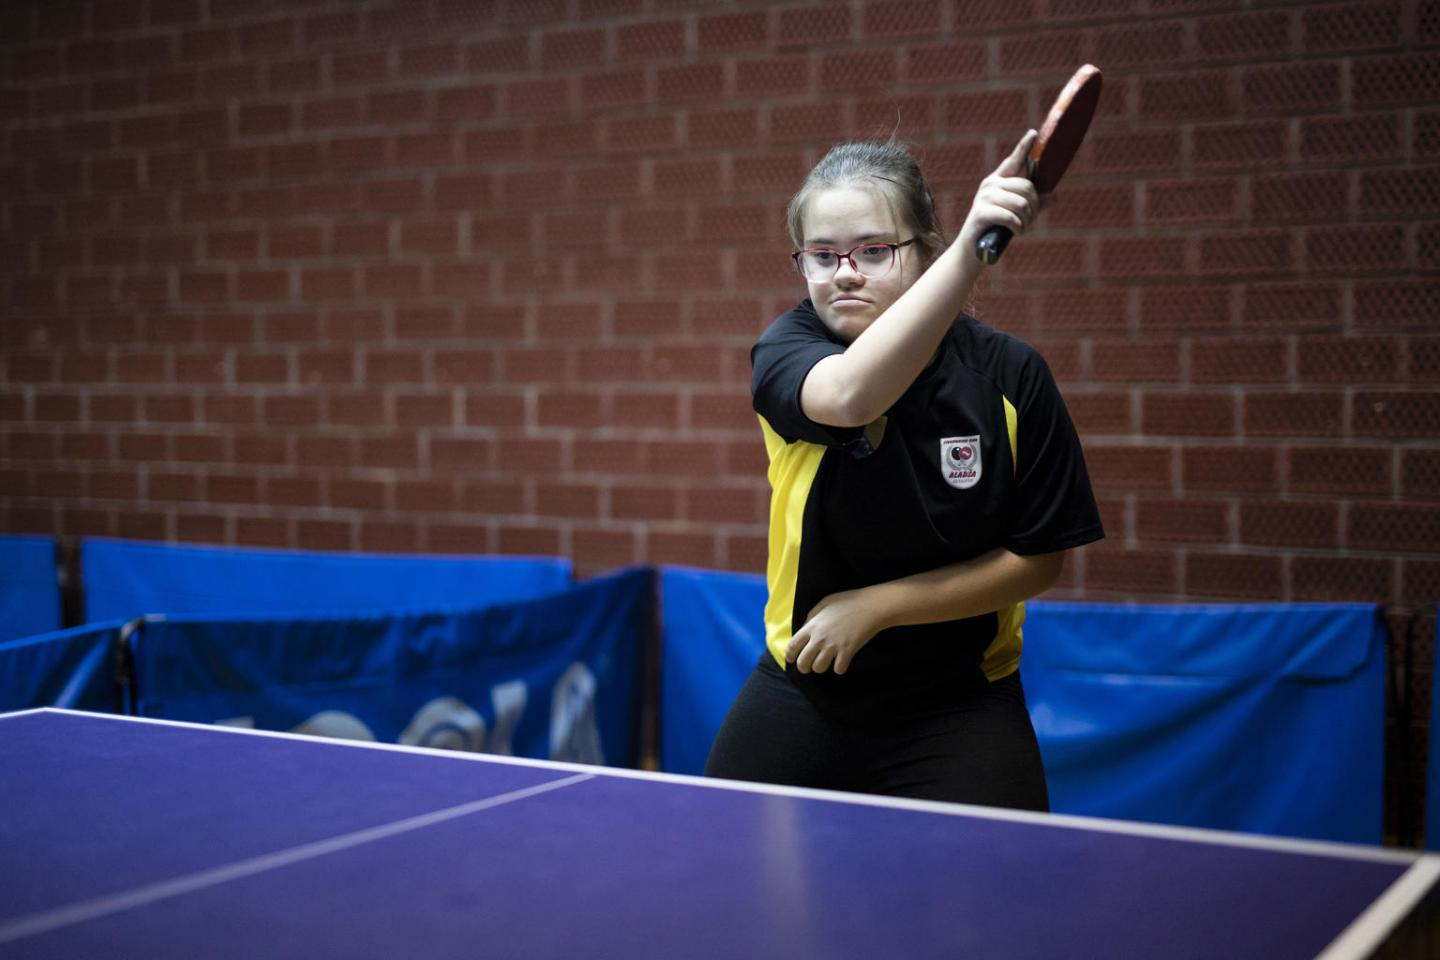 Edna plays table tennis at school.